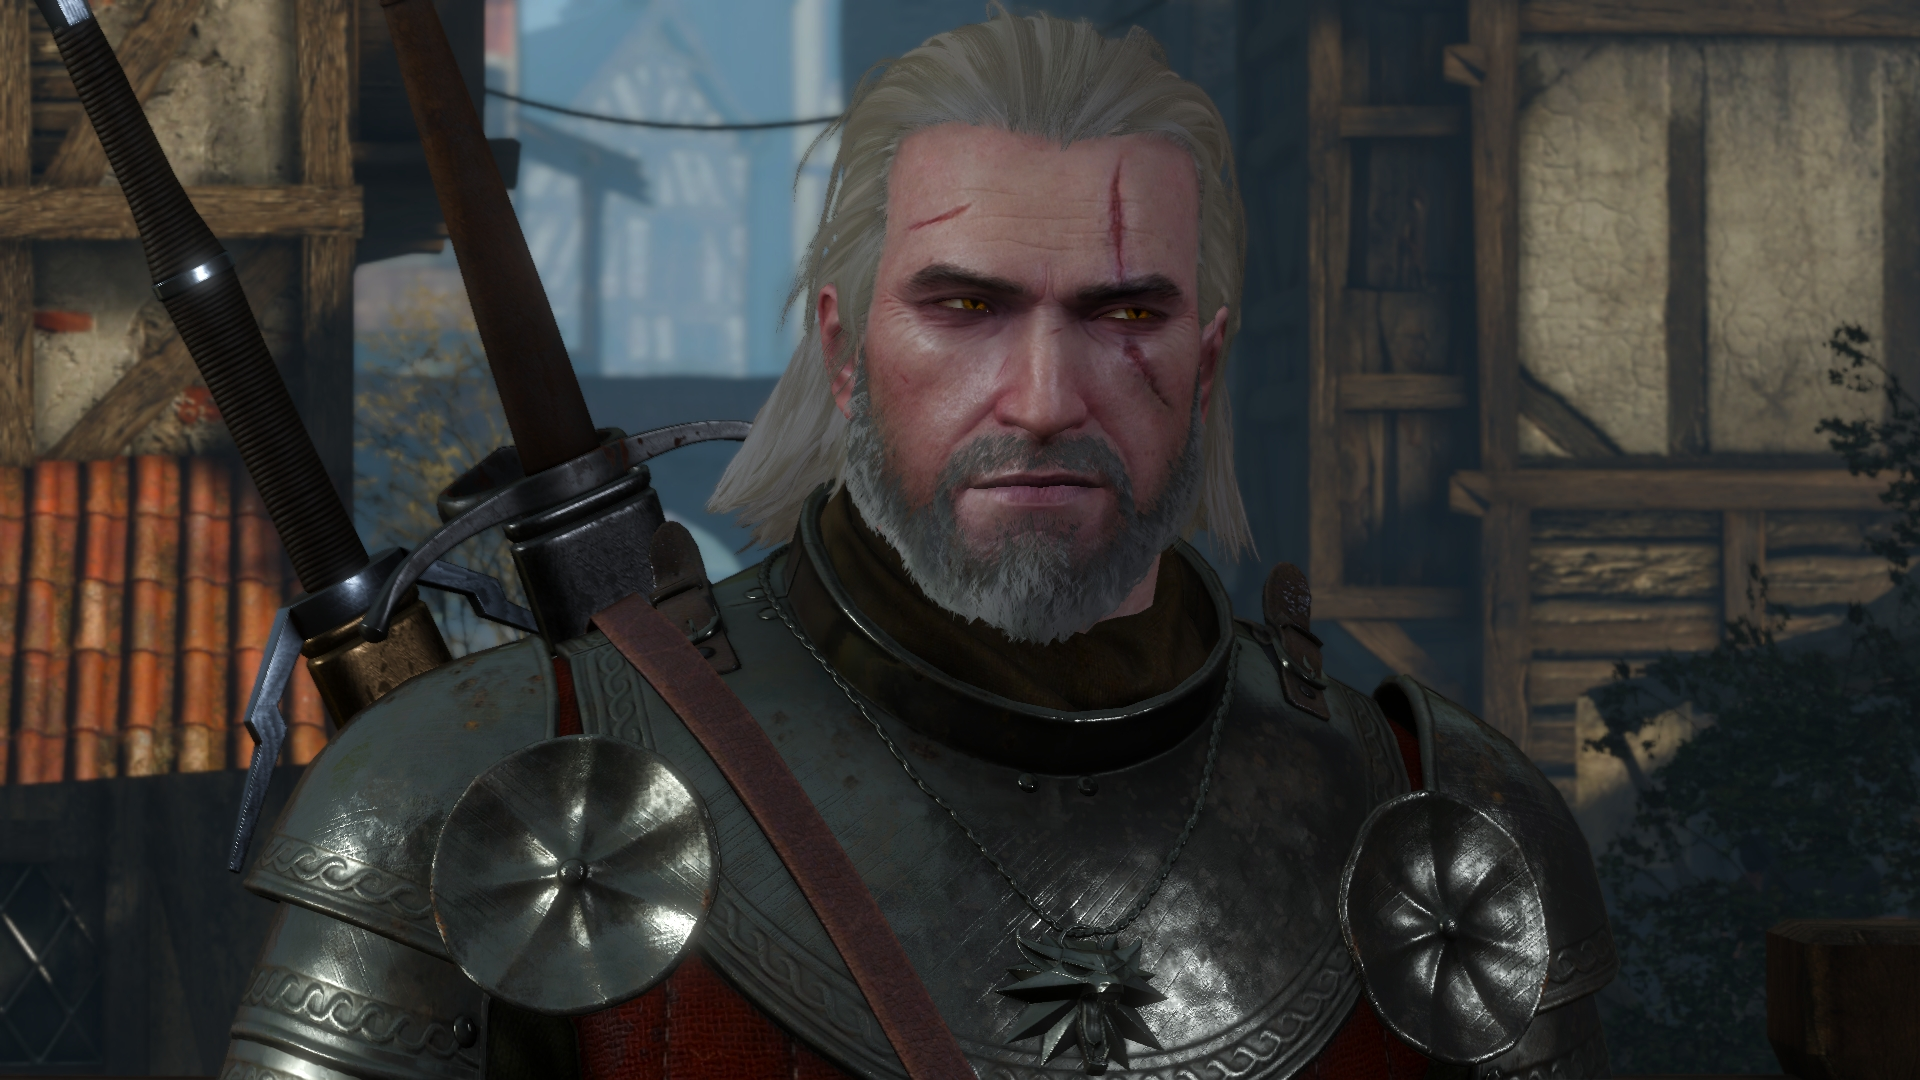 witcher3 2016-10-07 08-53-49-93.jpg - Witcher 3: Wild Hunt, the